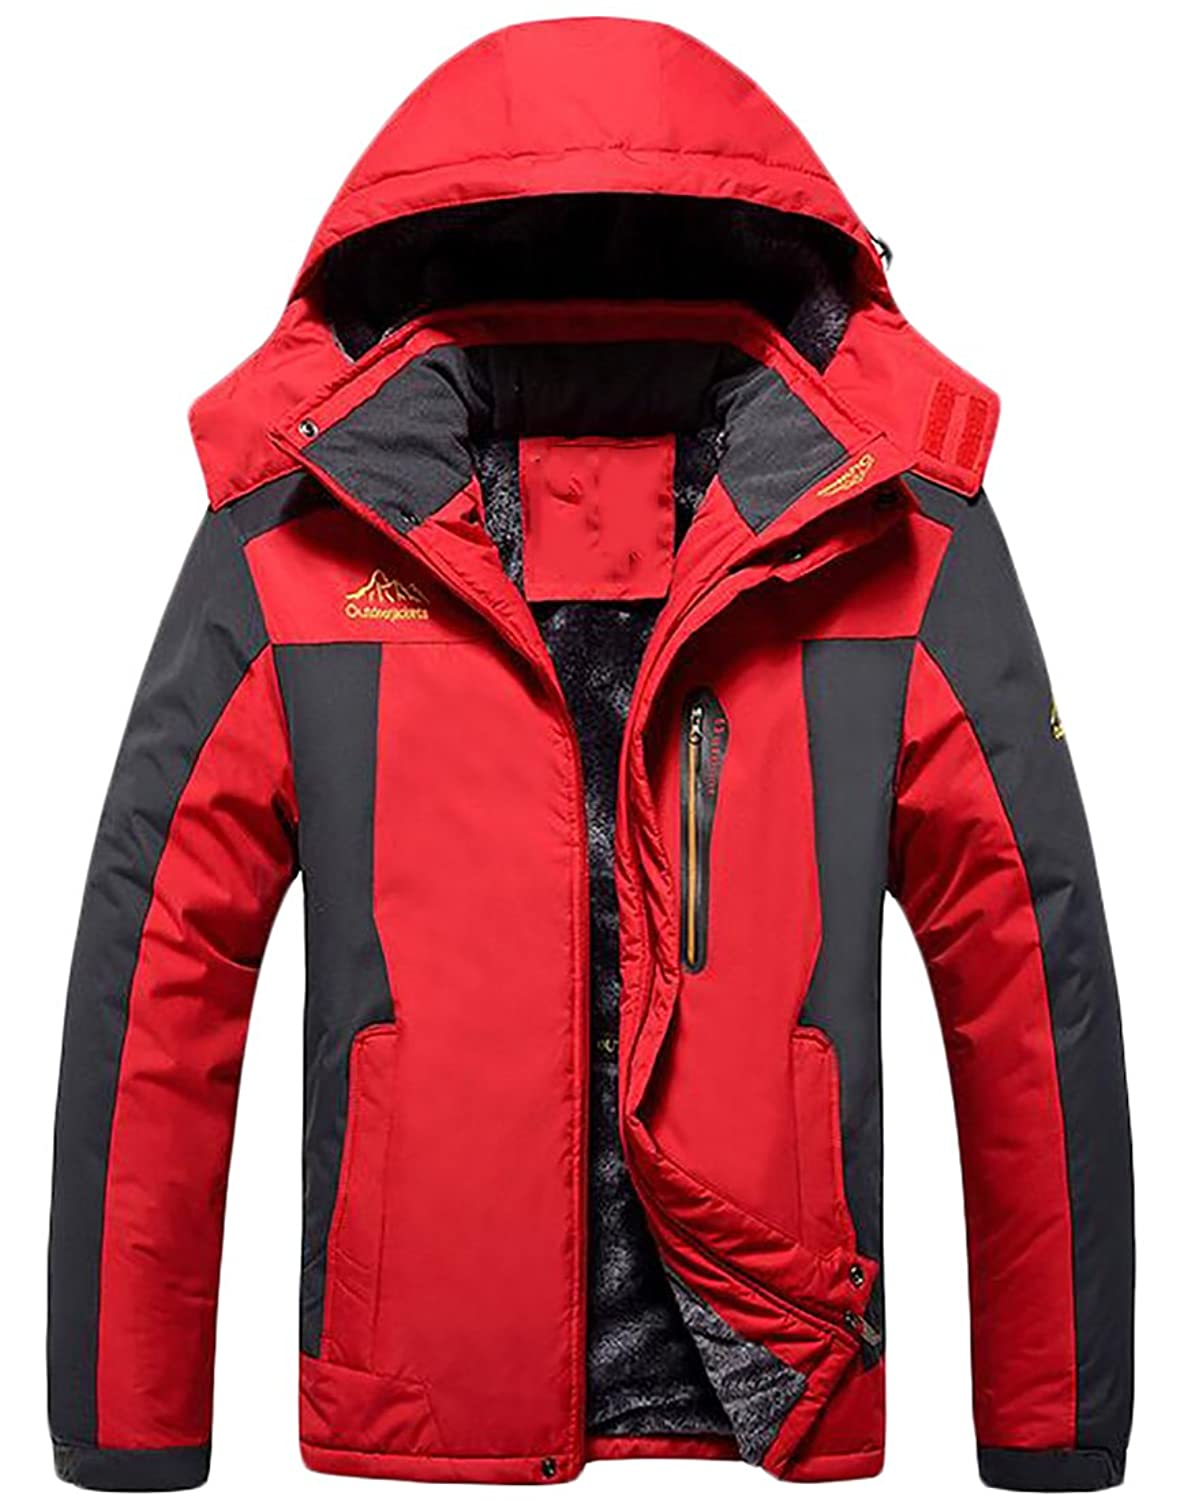 lovever OUTERWEAR メンズ B075F3TDJH  レッド US X-Large